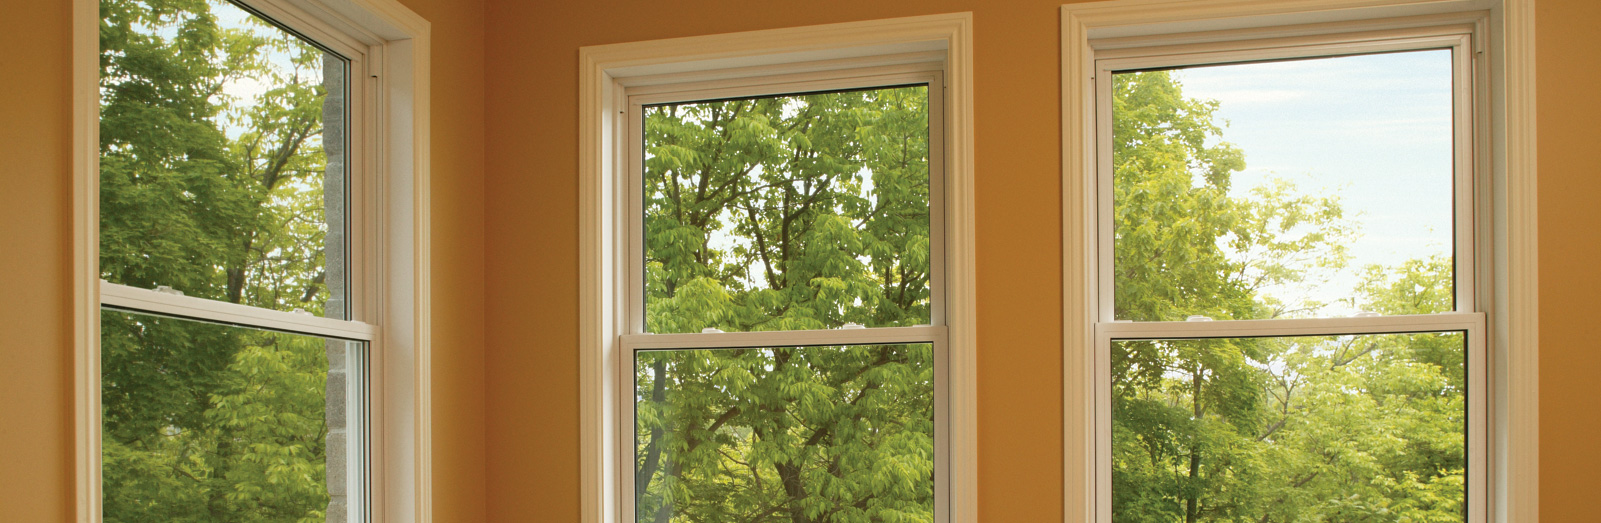 casement-windows-and-awnings